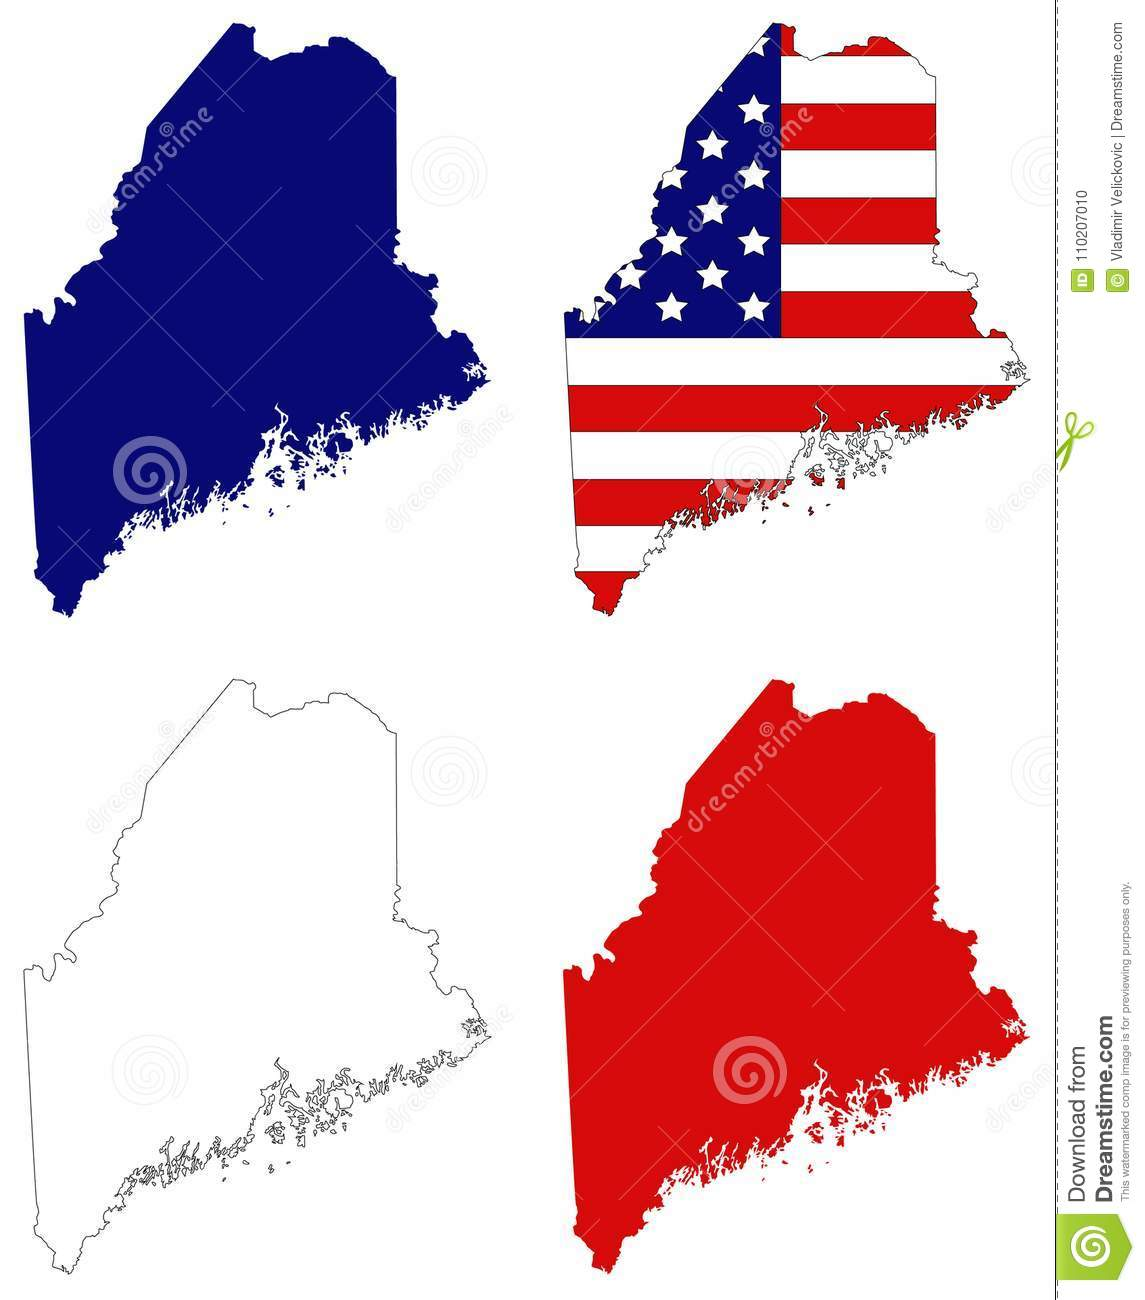 Maine Map Usa.Maine Map With Usa Flag State In The New England Region Of The